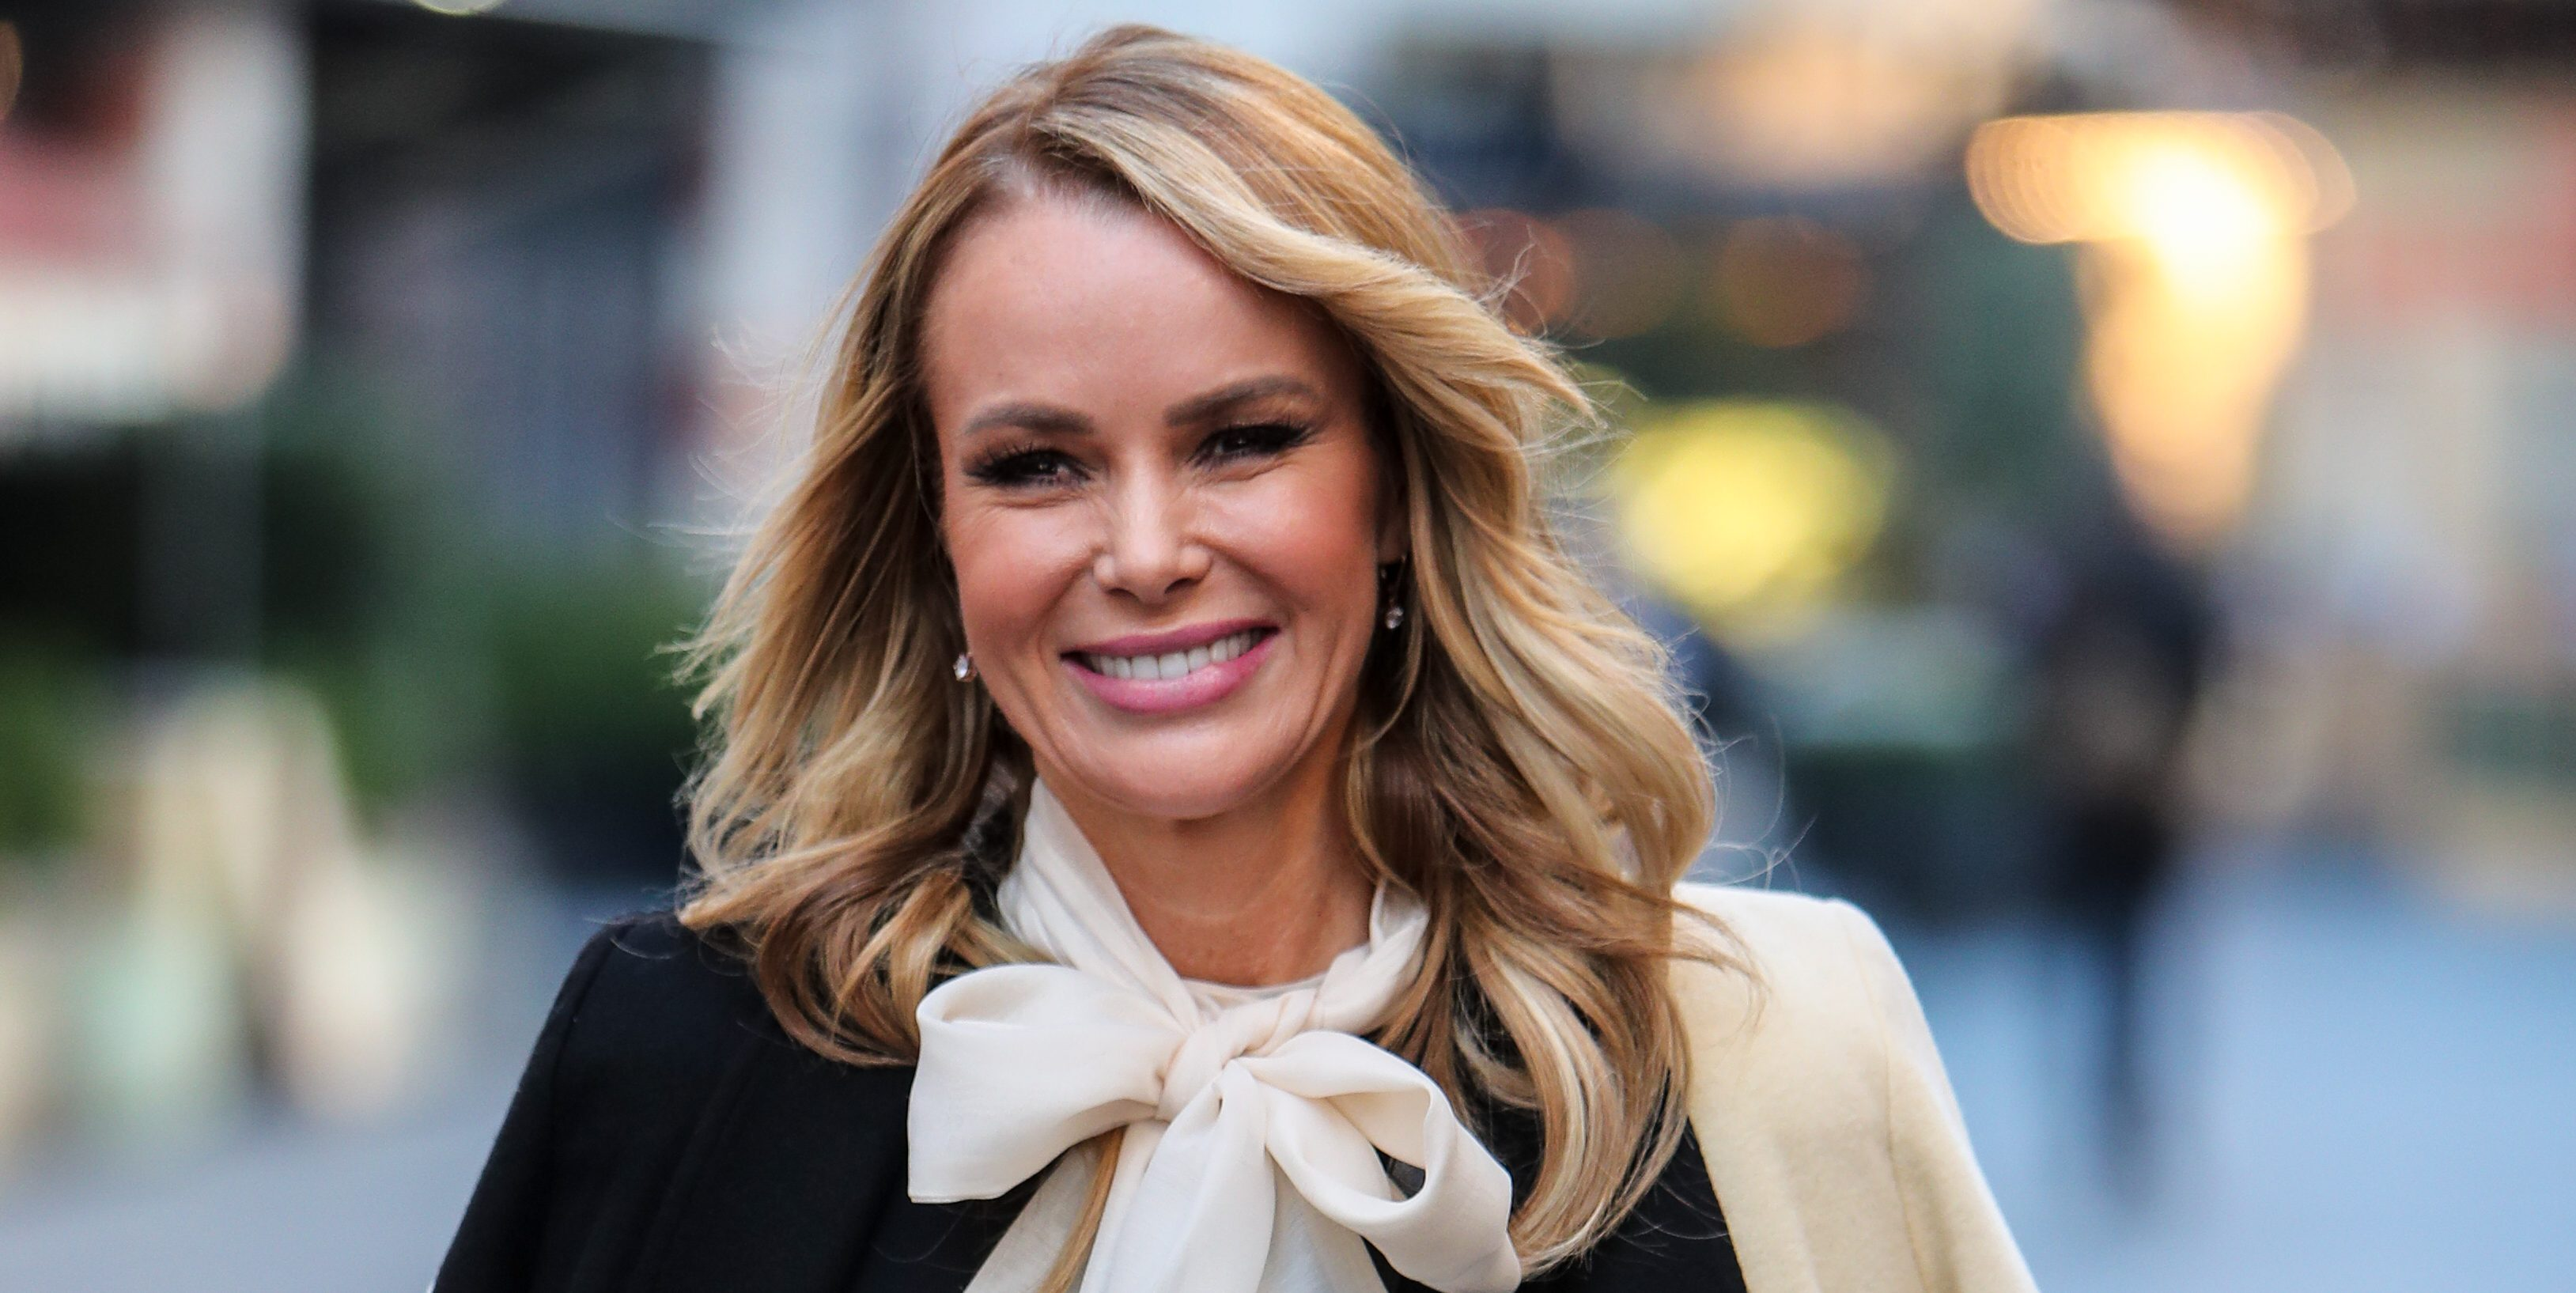 Britain's Got Talent: Amanda Holden teases return of Simon Cowell's 'Mr Nasty'